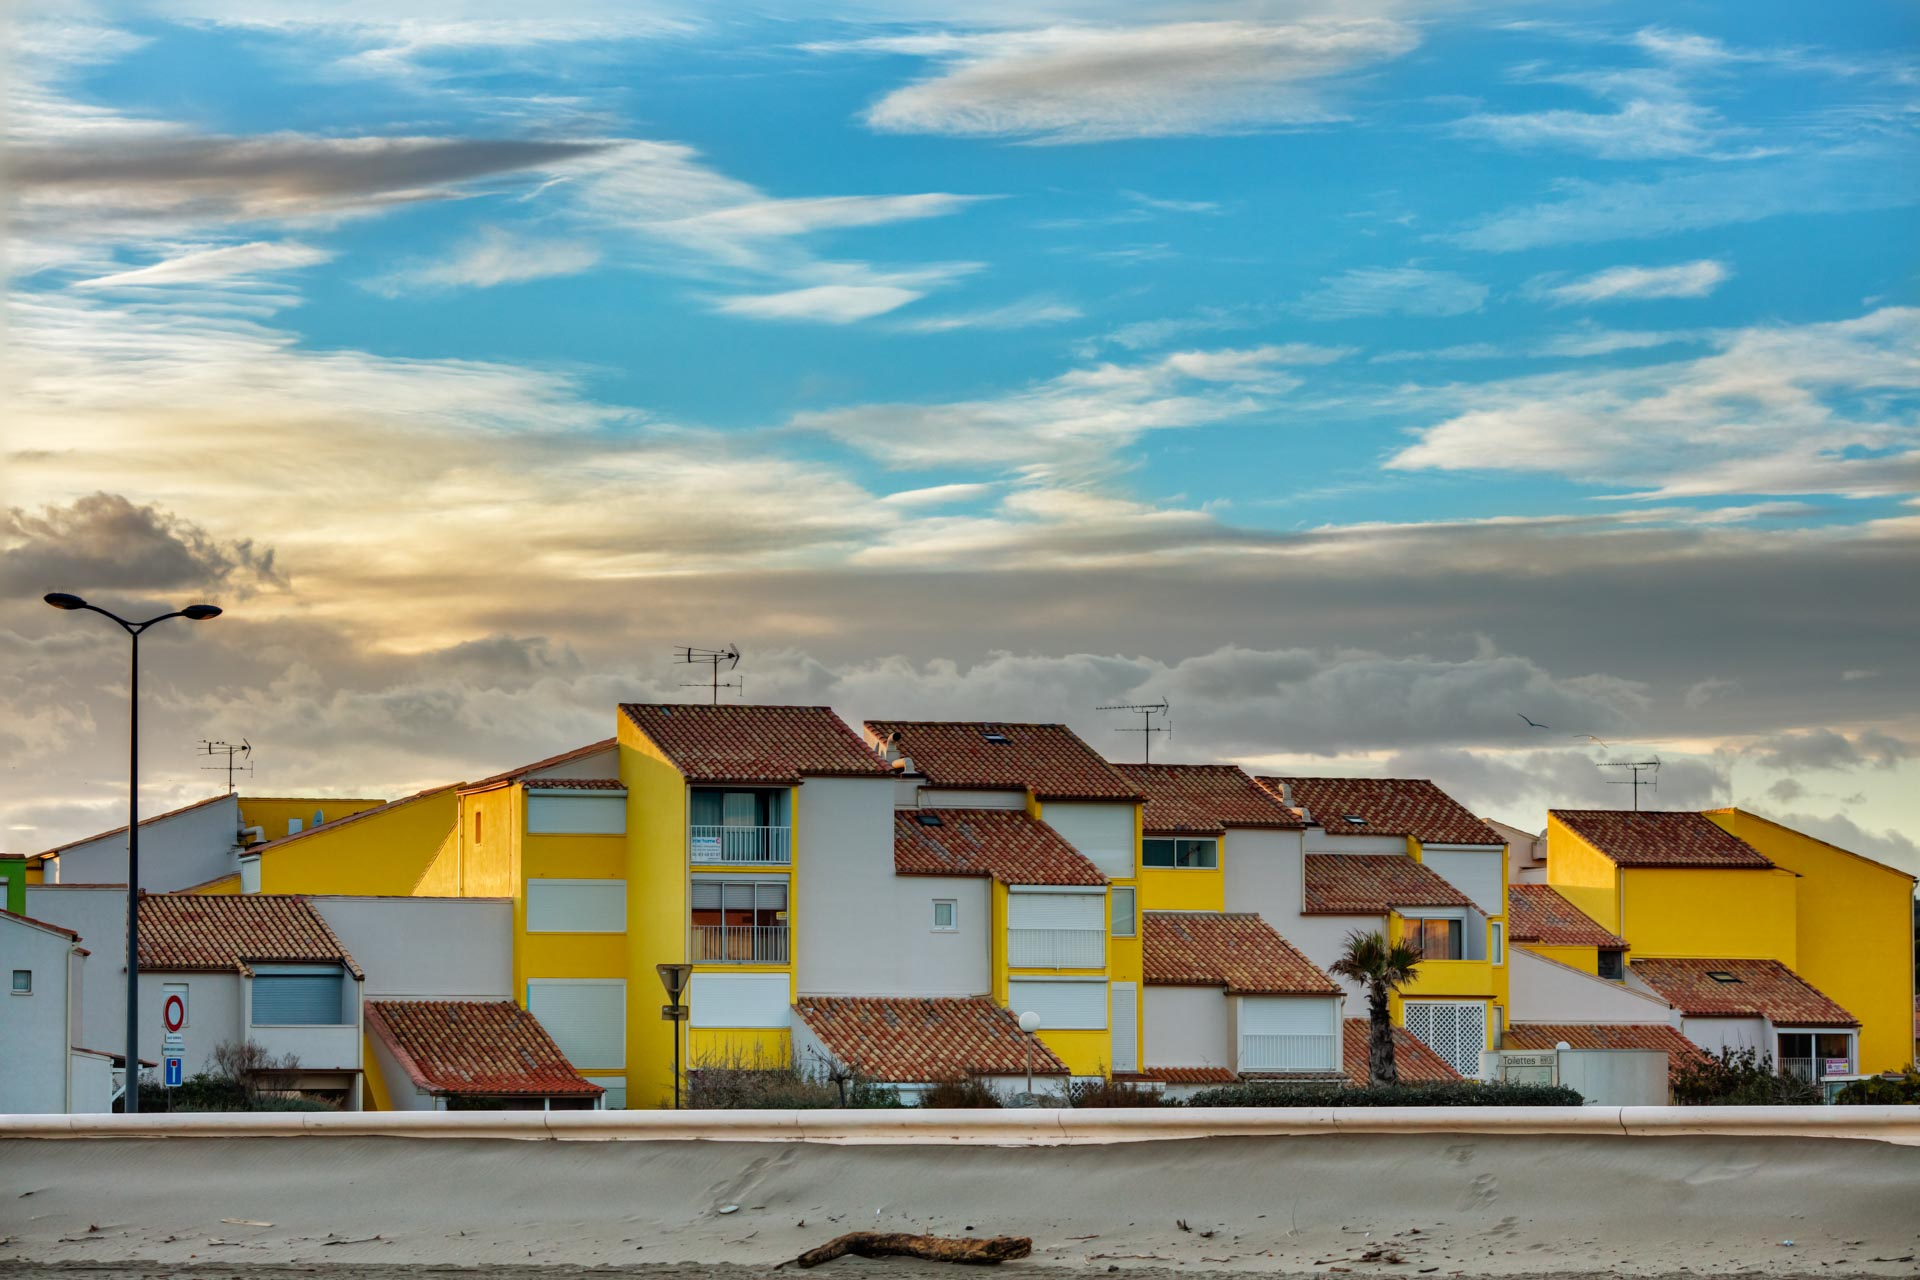 View on houses at the Beach at Southern France